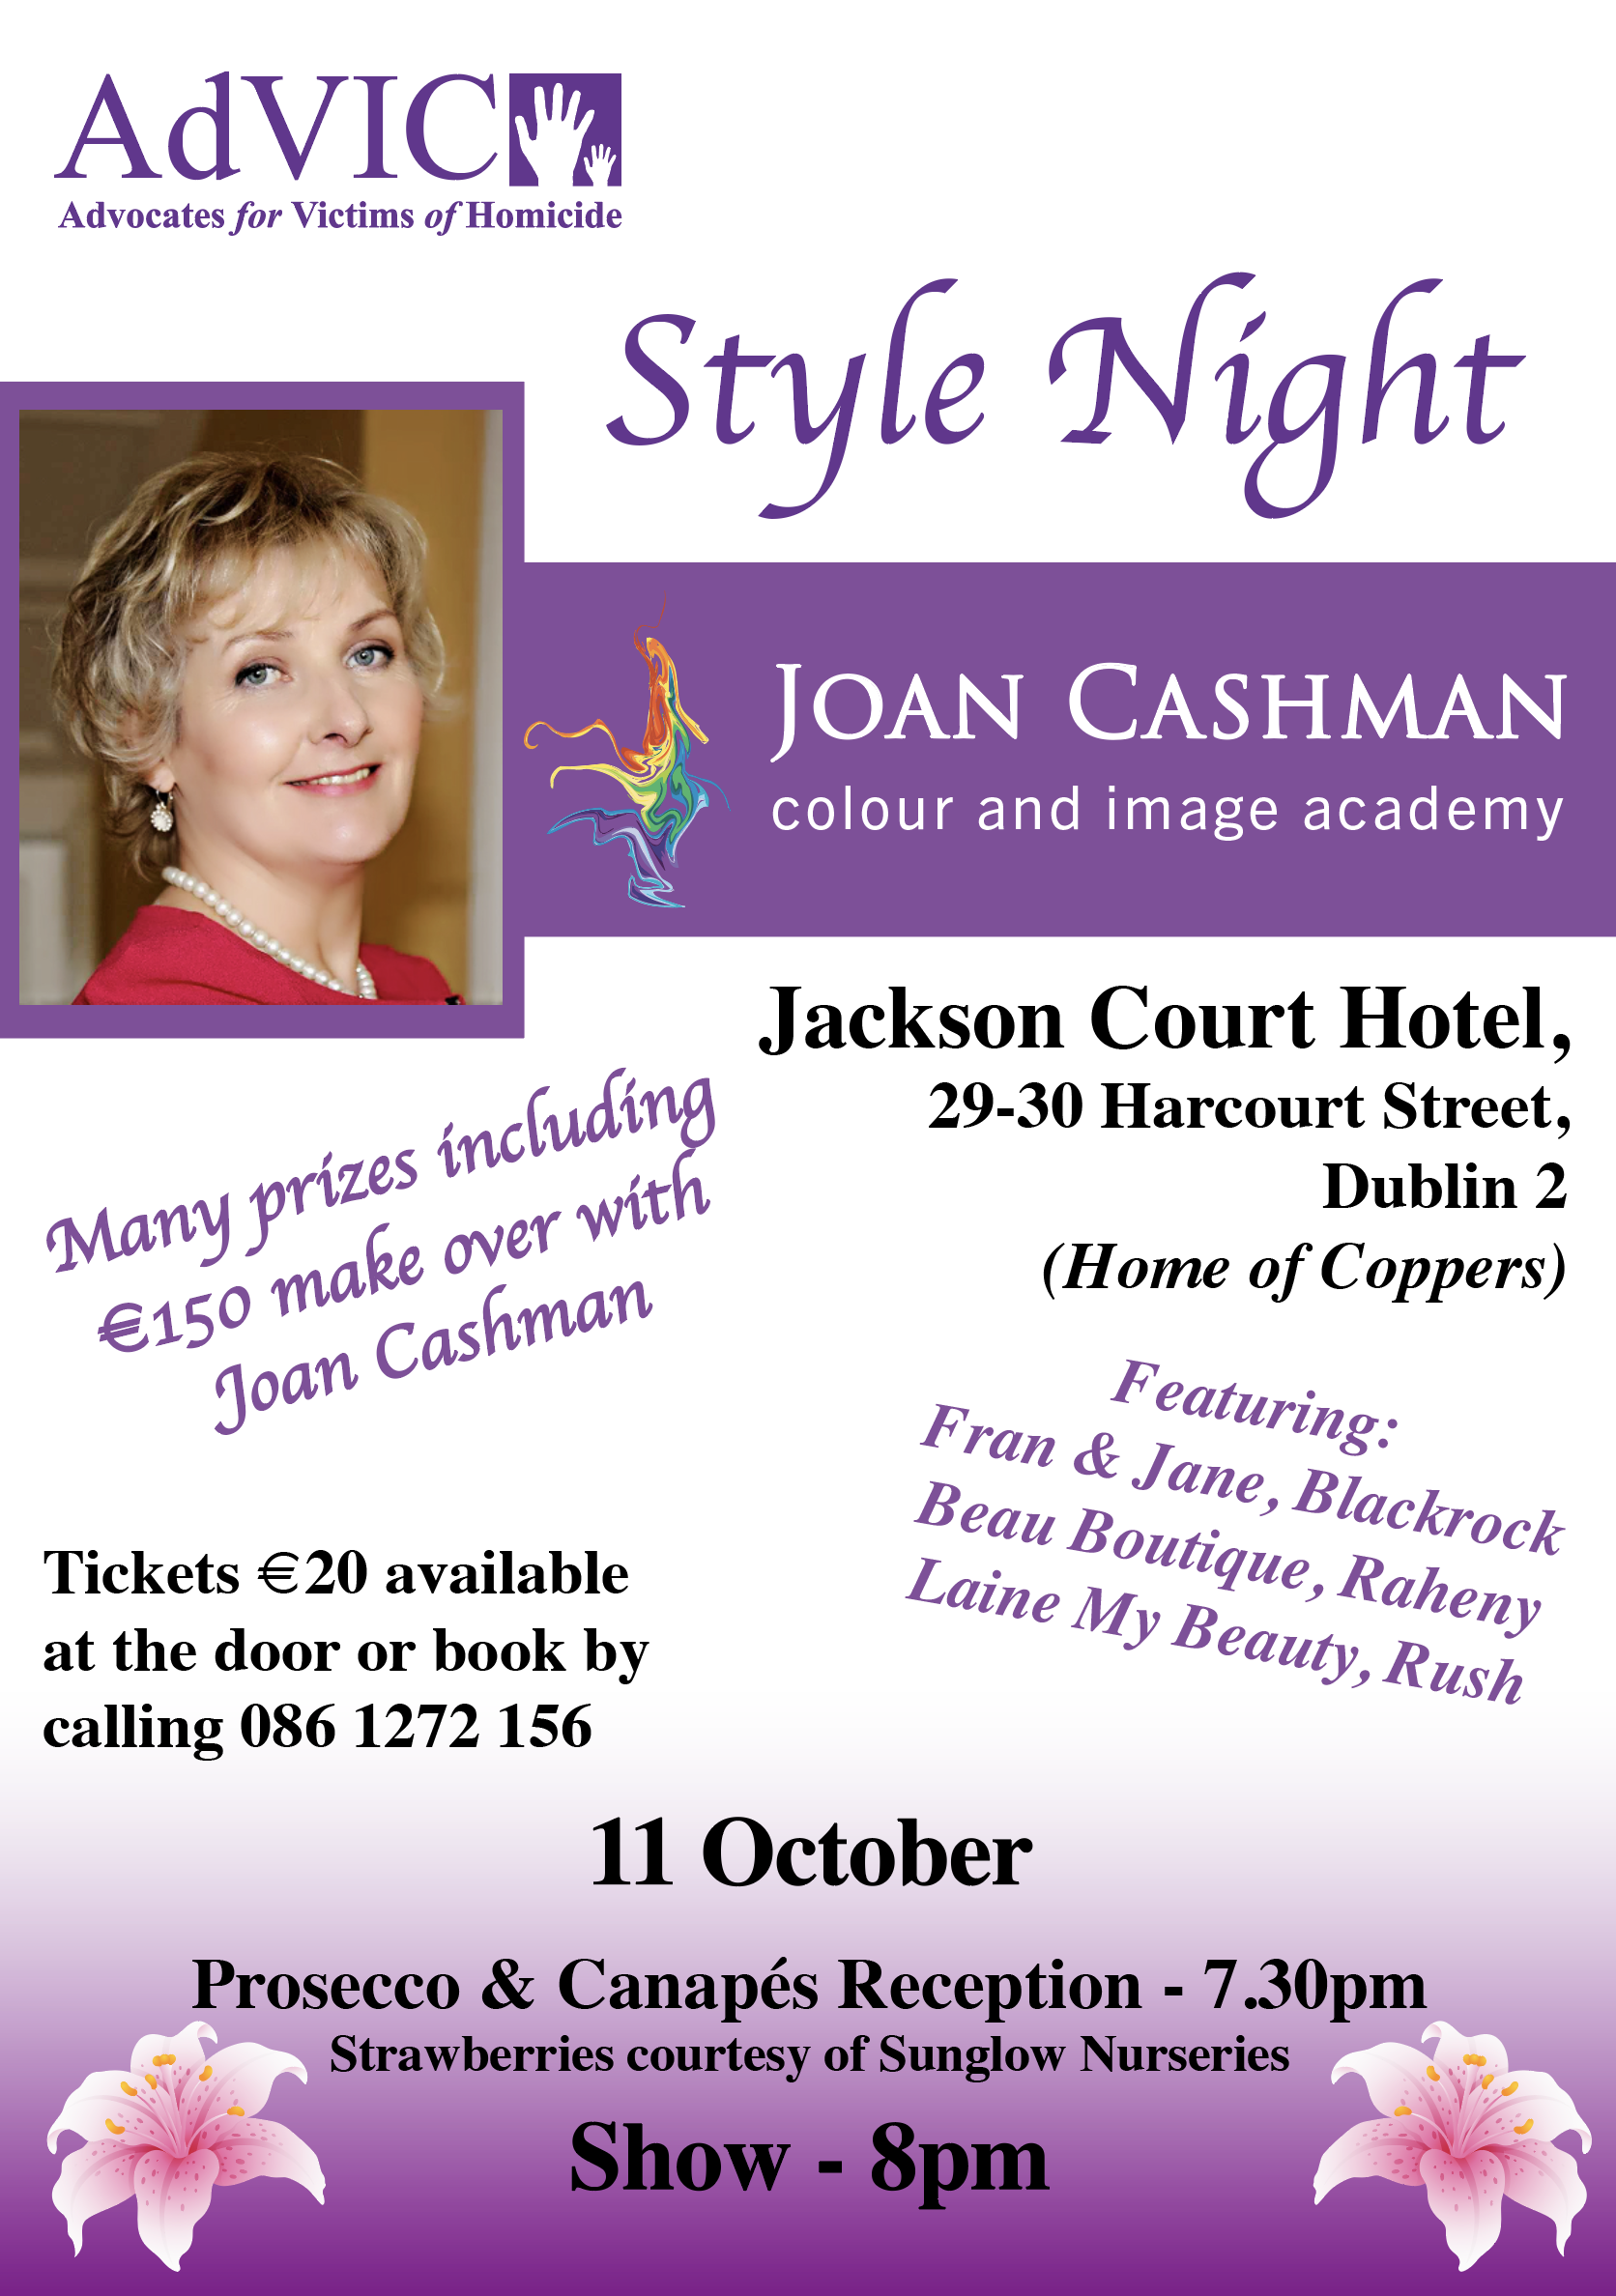 Style Night Fundraiser – October 11th @ 7.30pm